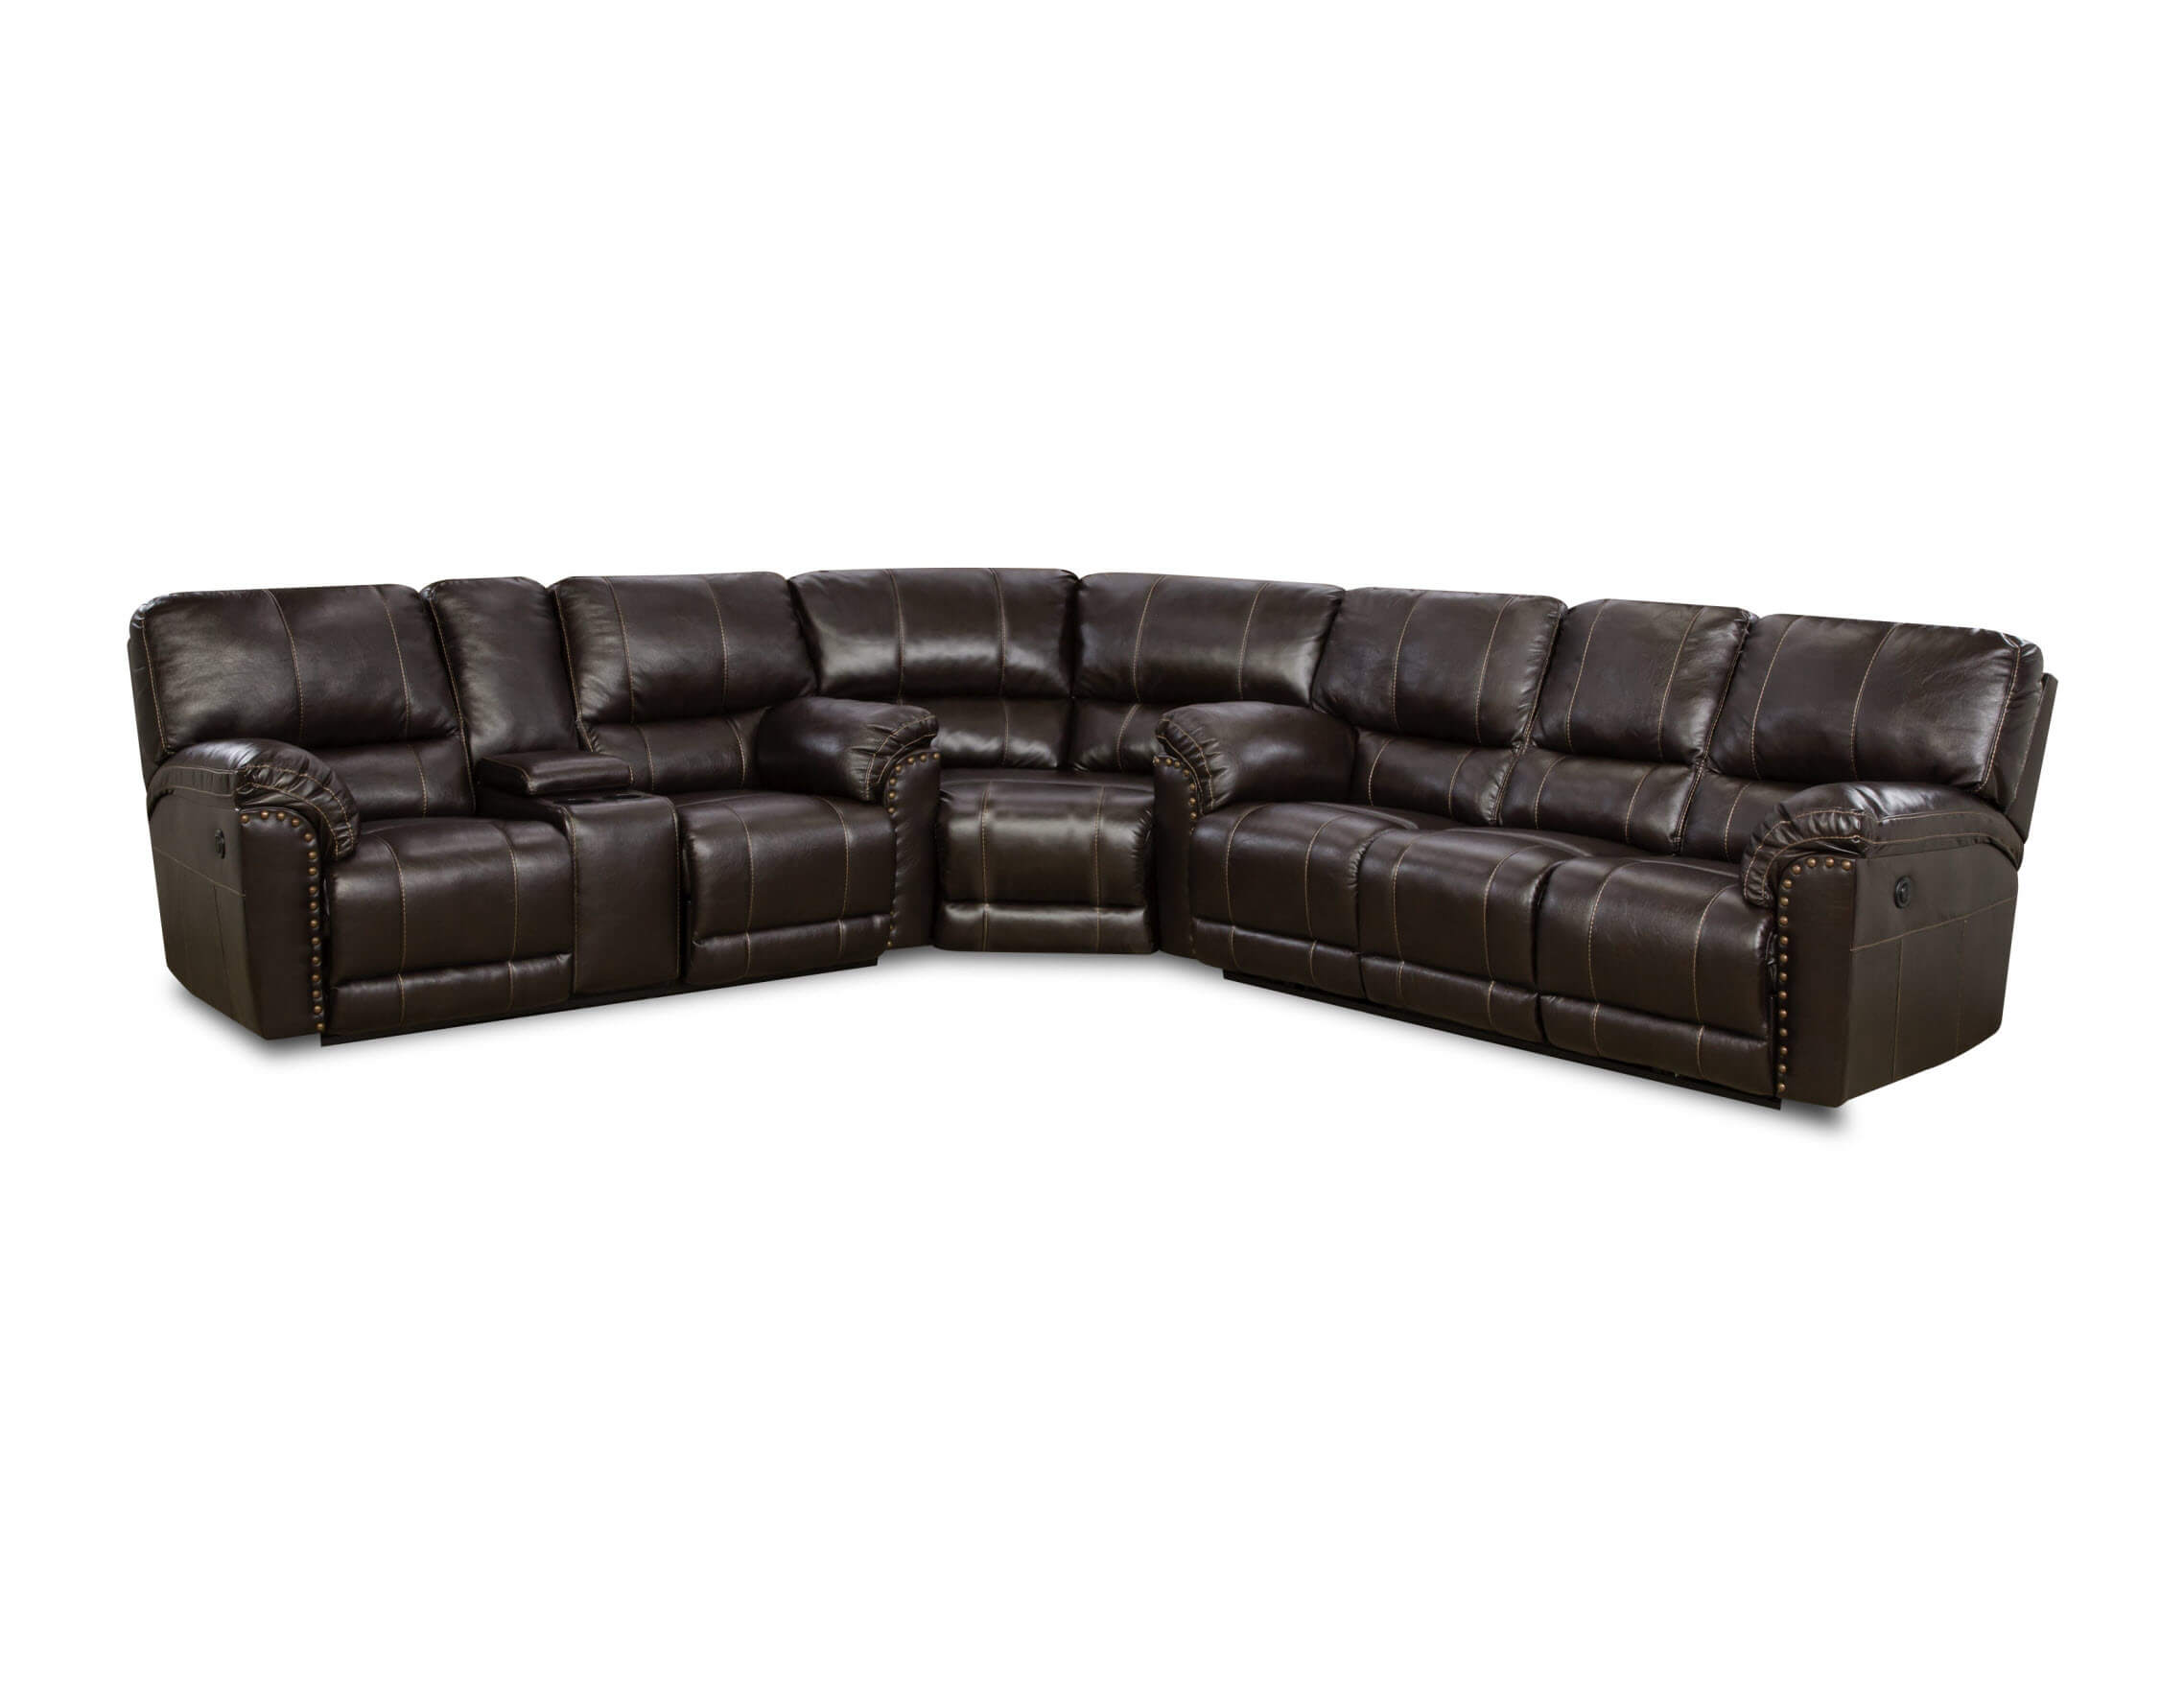 Sofa Set Sale In Kannur Abilene Chestnut Reclining Sectional By Simmons